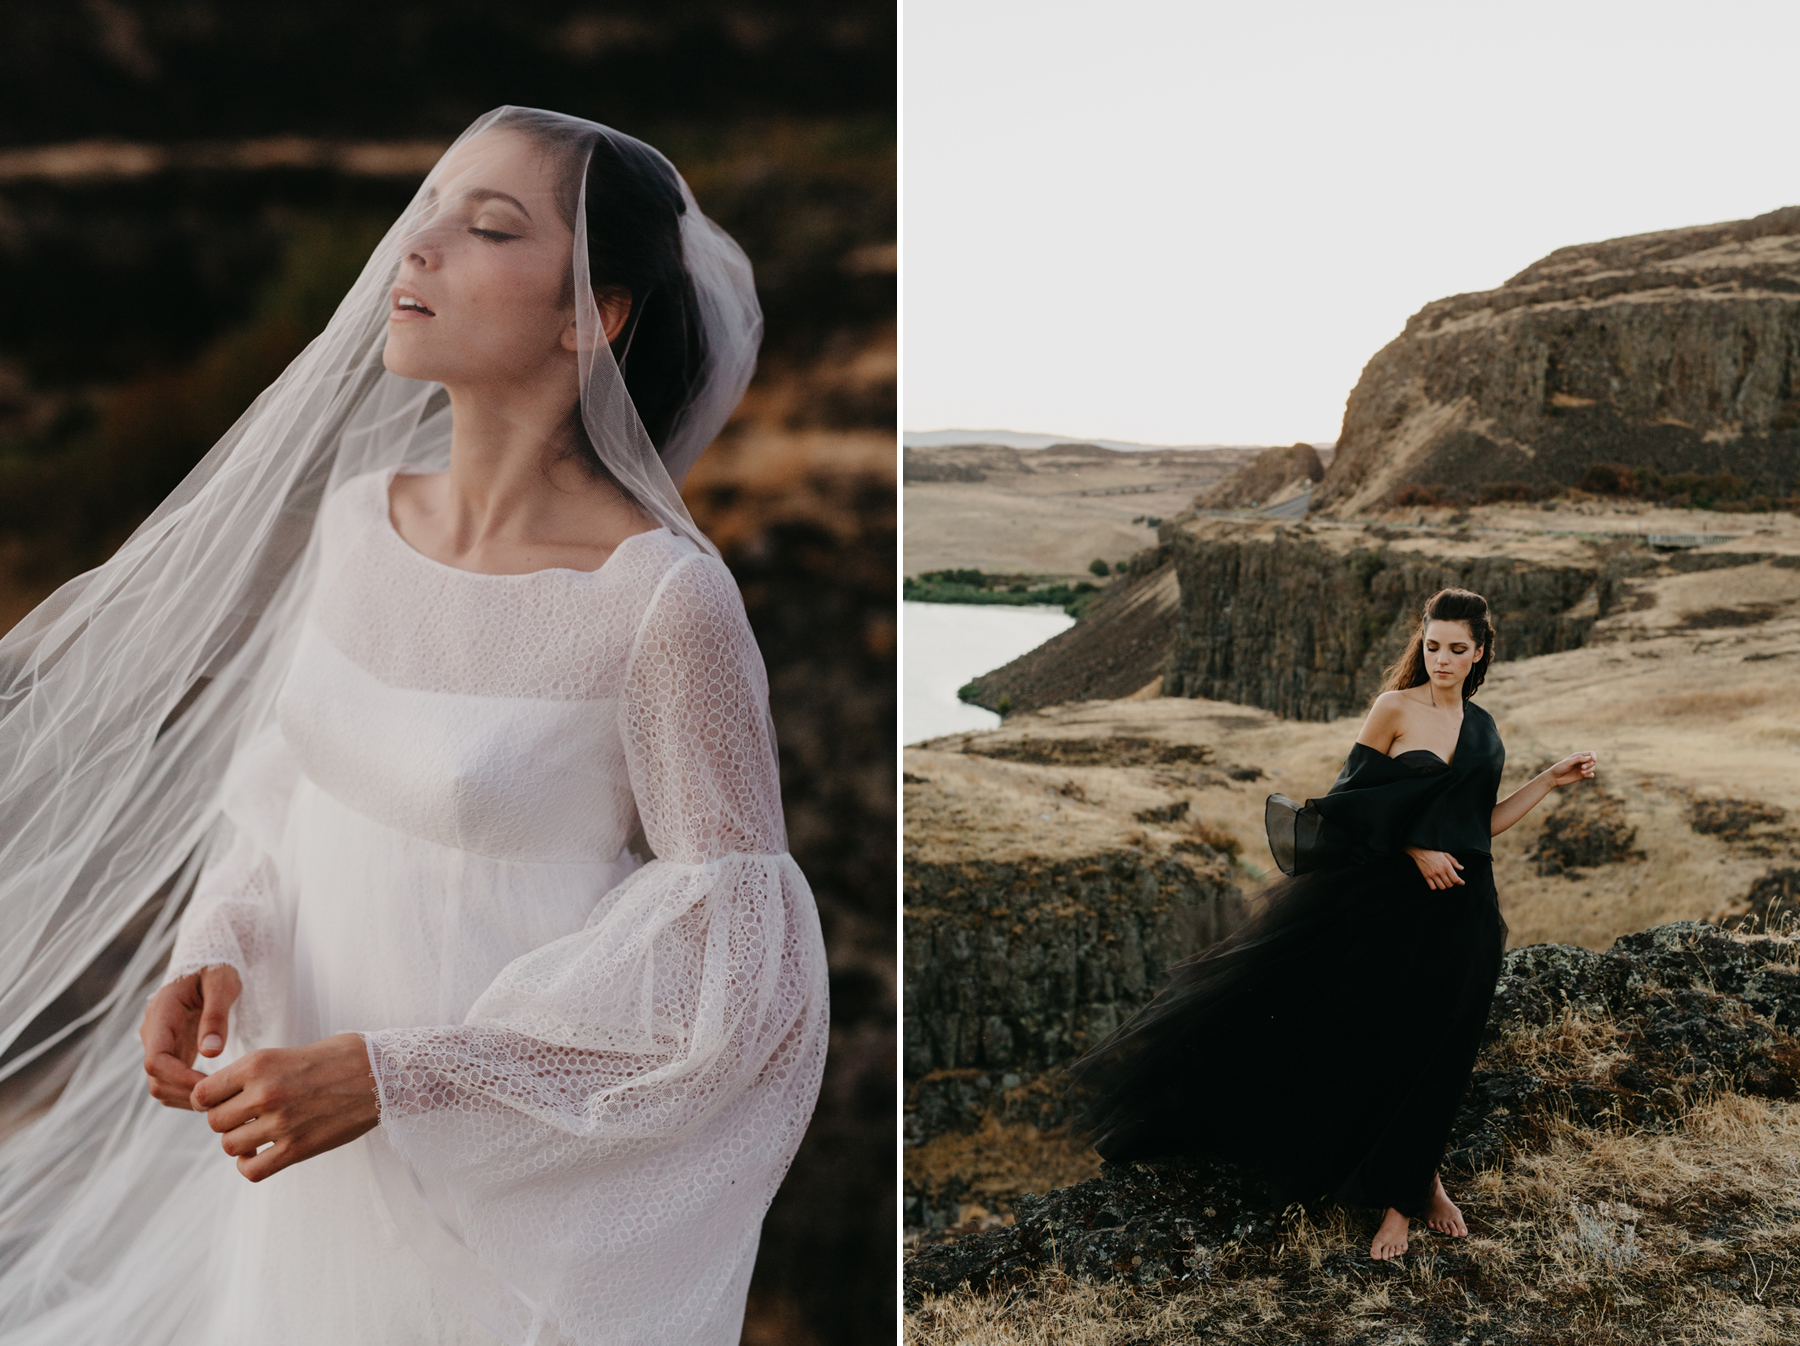 The new bridal dress collection from Elizabeth Dye